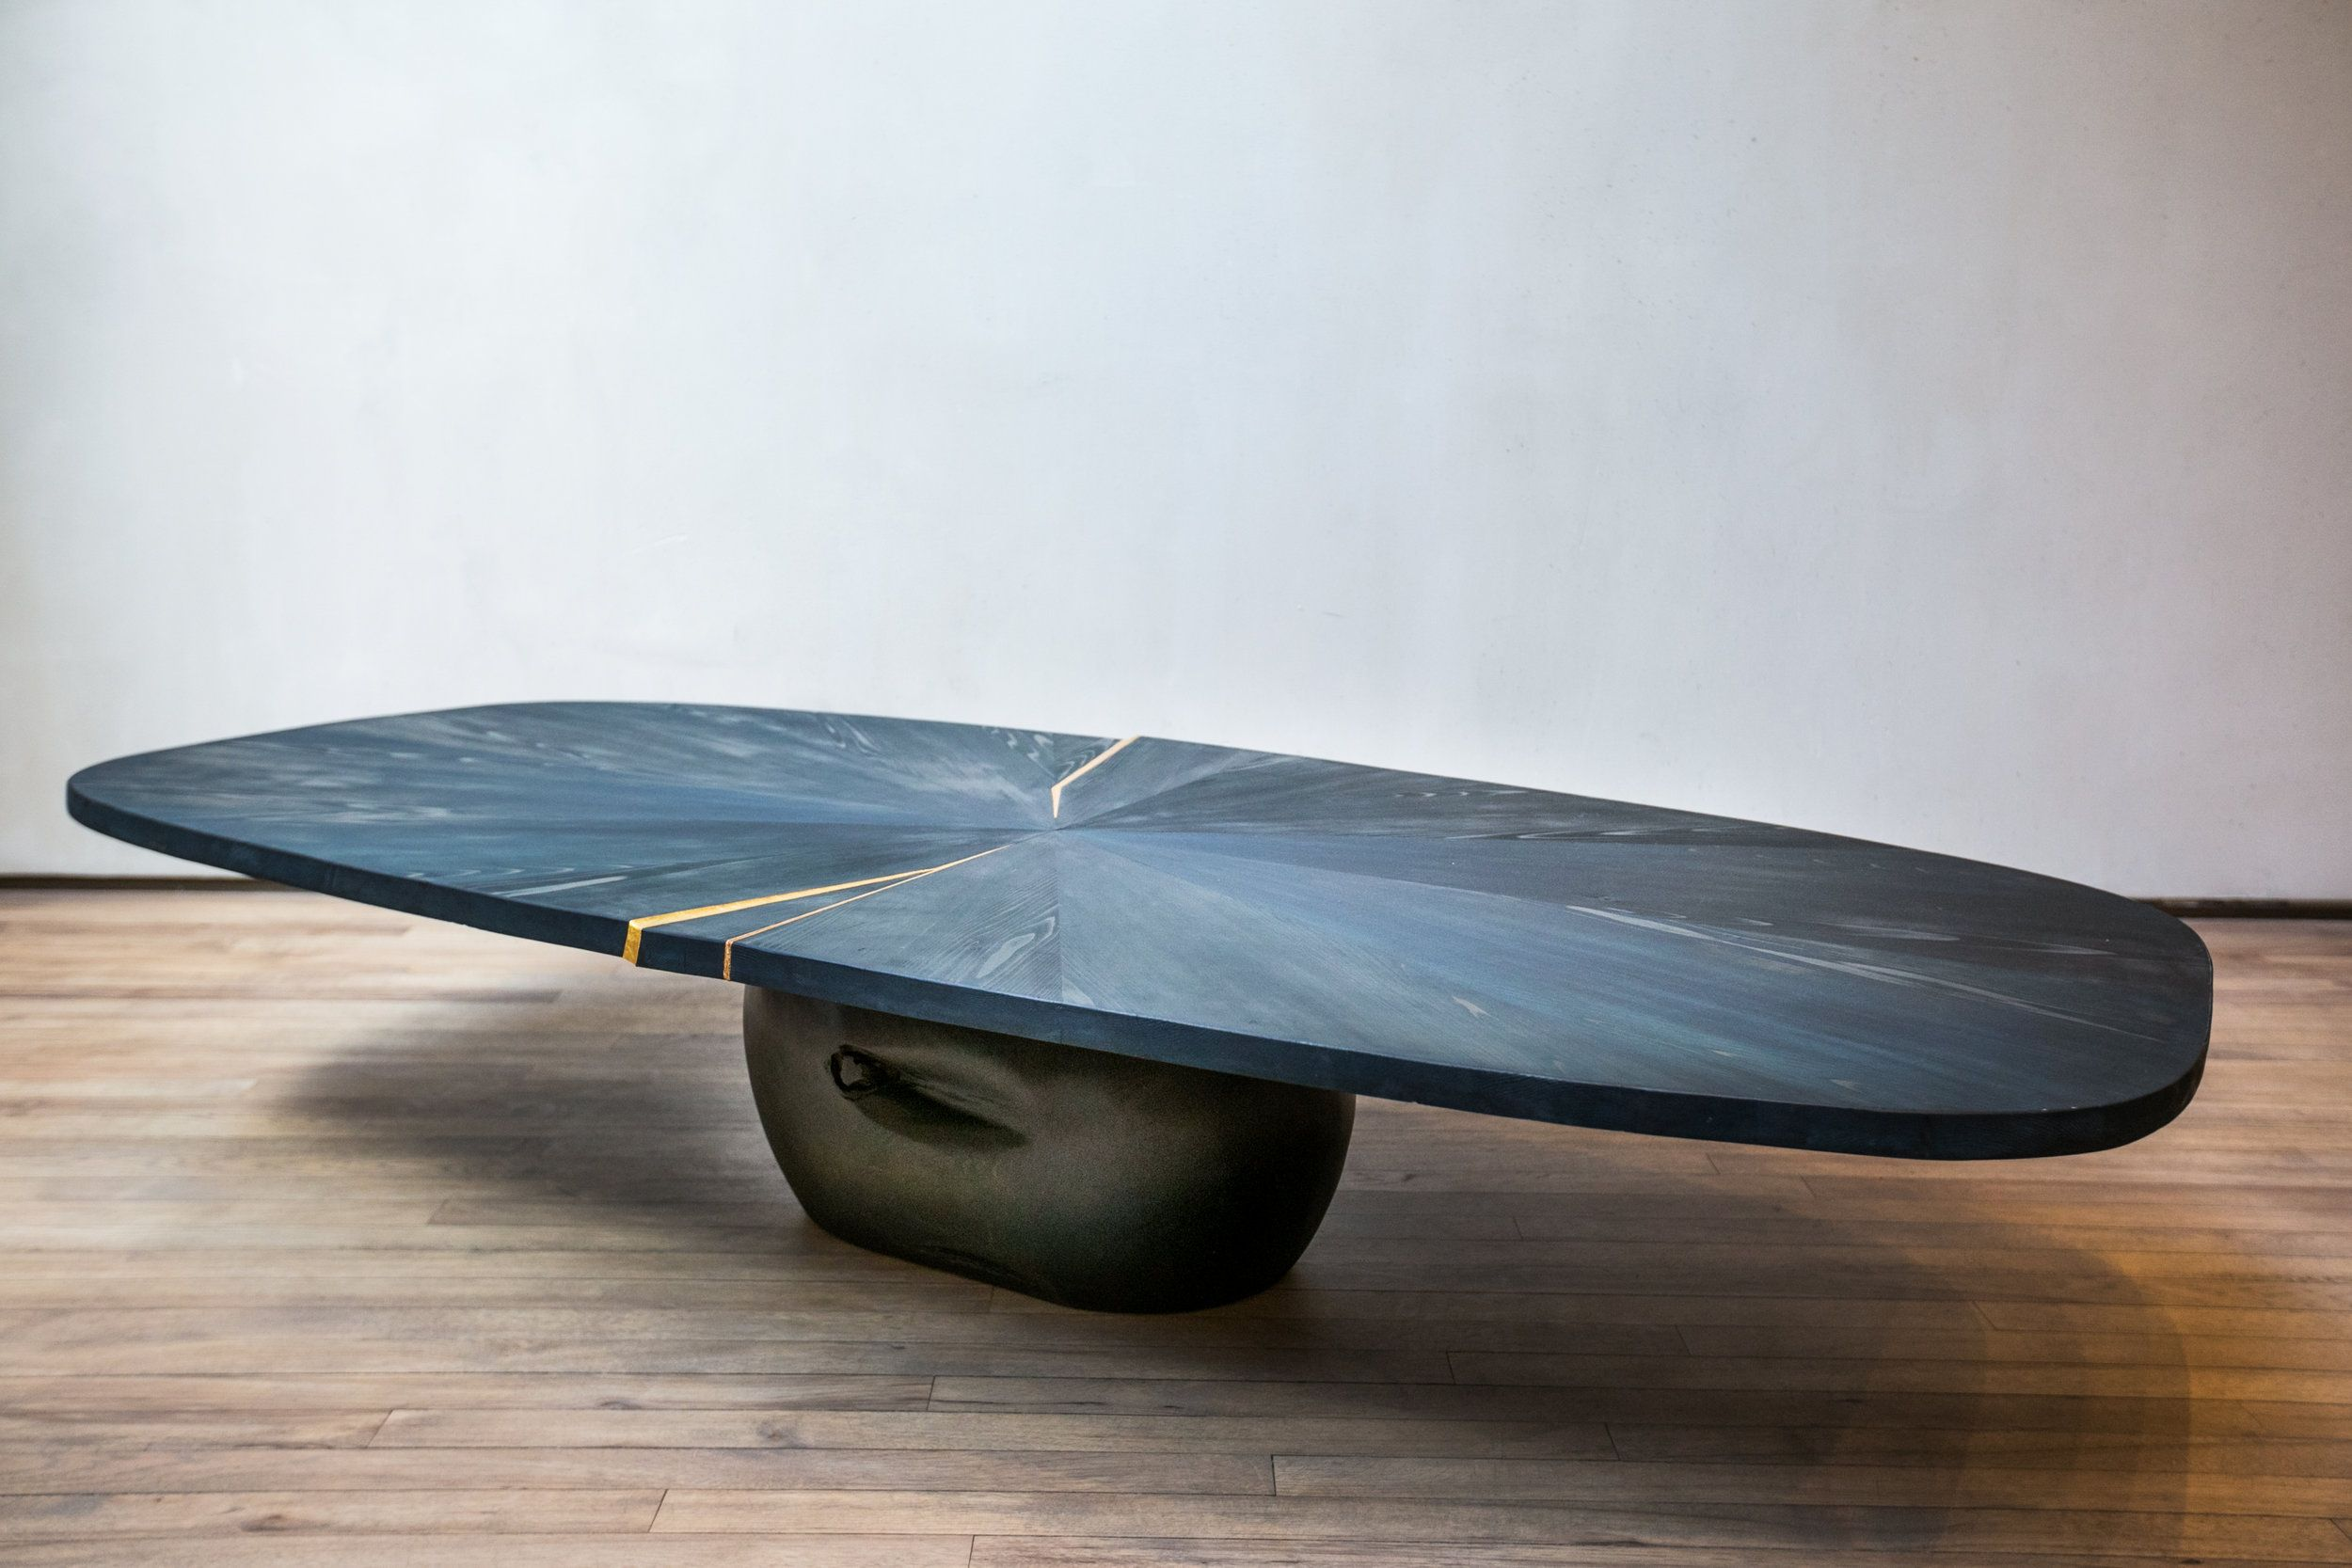 Pin By Myra Ong On Salontafel Burled Wood Table Marble Coffee Table [ 1667 x 2500 Pixel ]